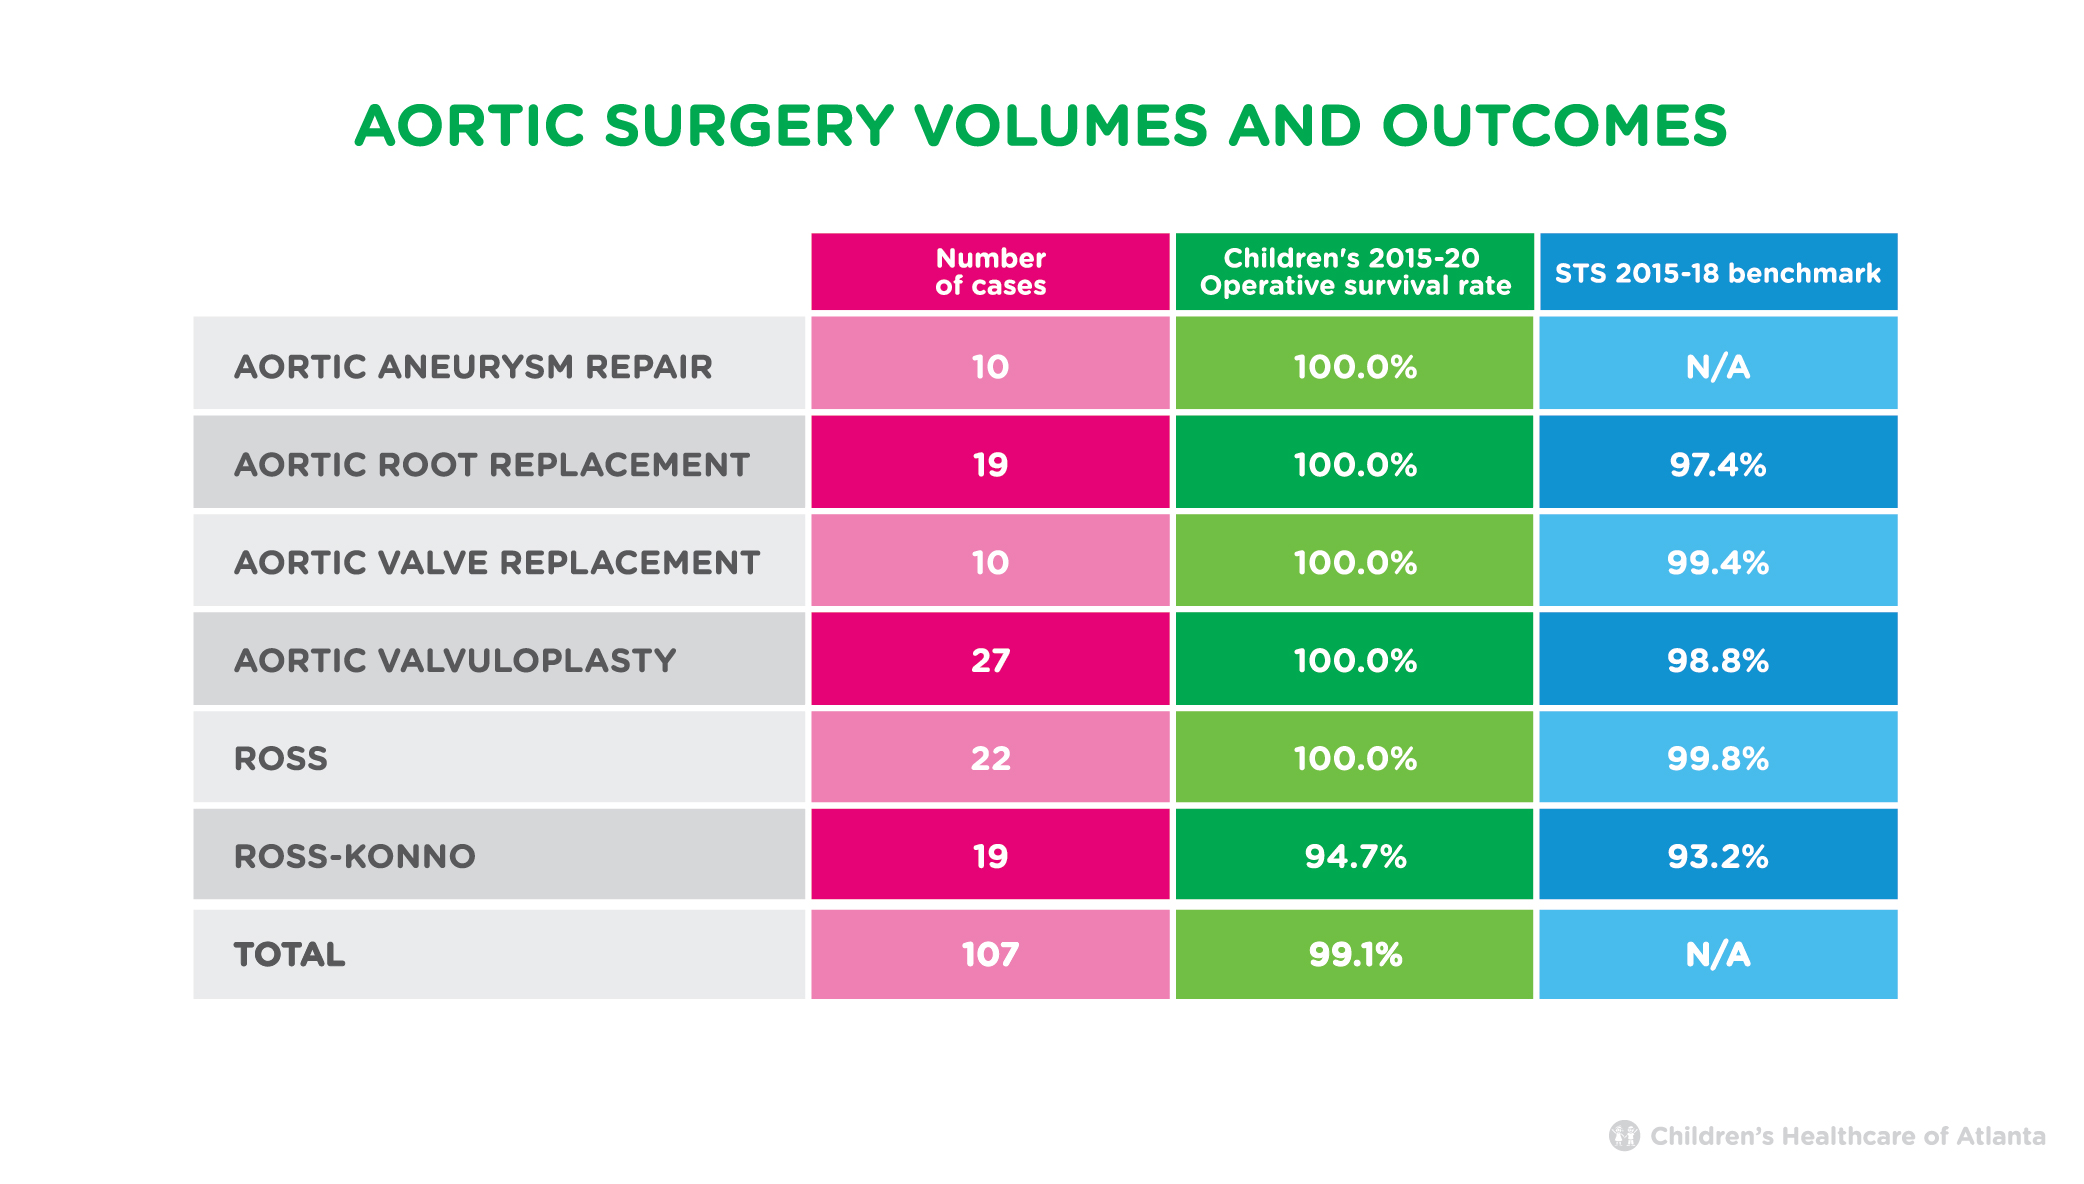 Aortic Surgery Volumes and Outcomes